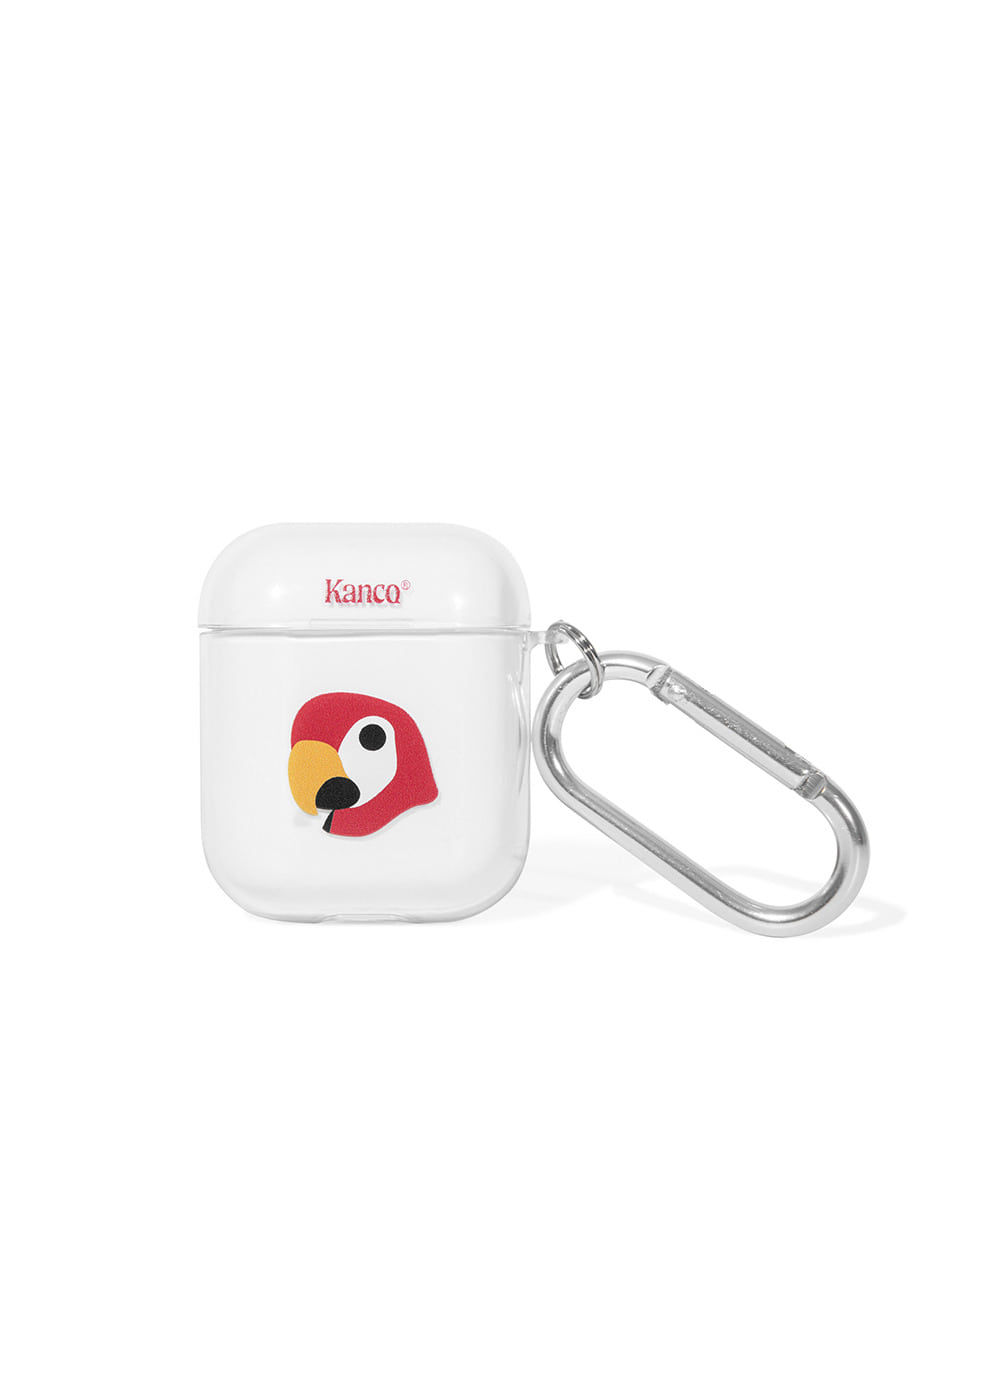 KANCO SYMBOL AIRPODS CASE clear